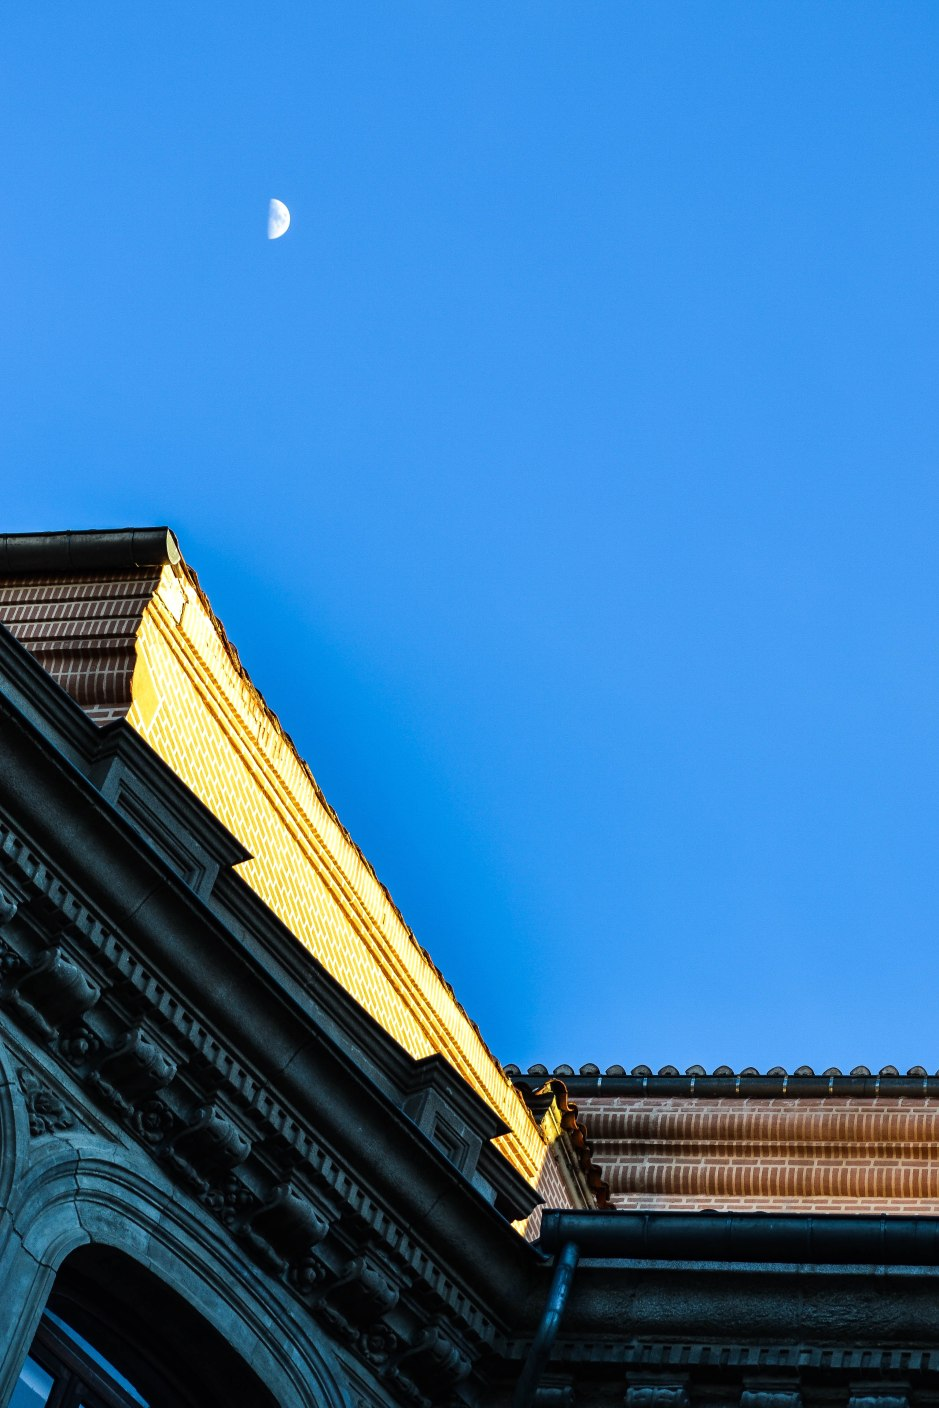 Walking around the old town of Madrid near Puerta del Sol. Look up and be amazed.